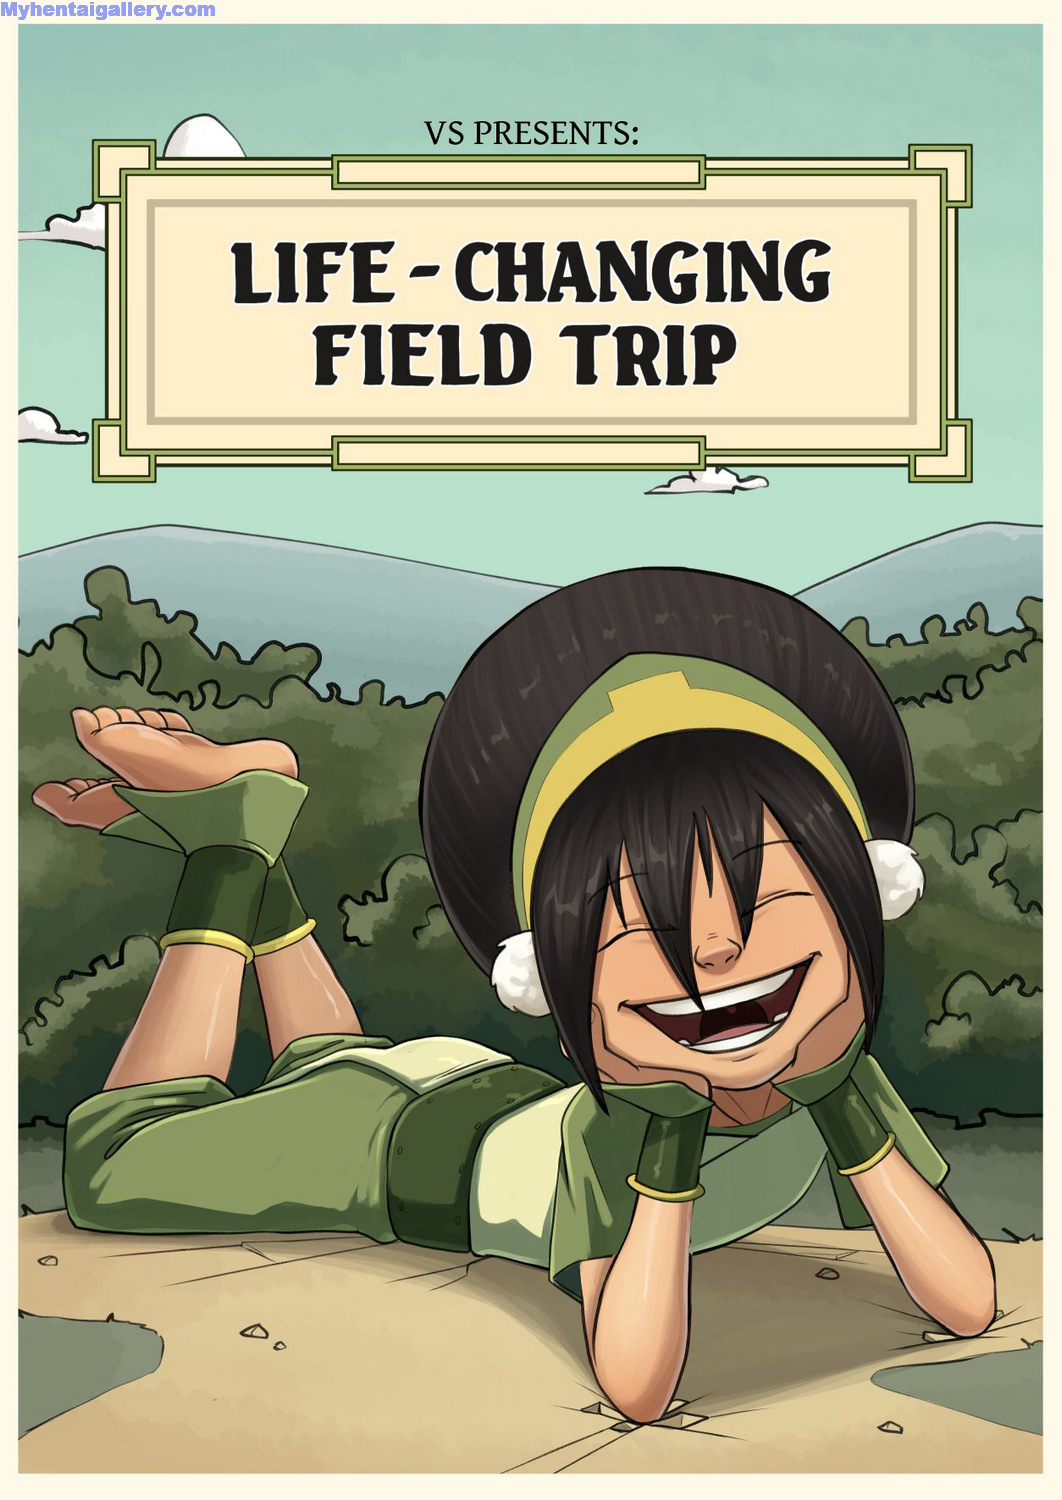 Life-Changing Field Trip